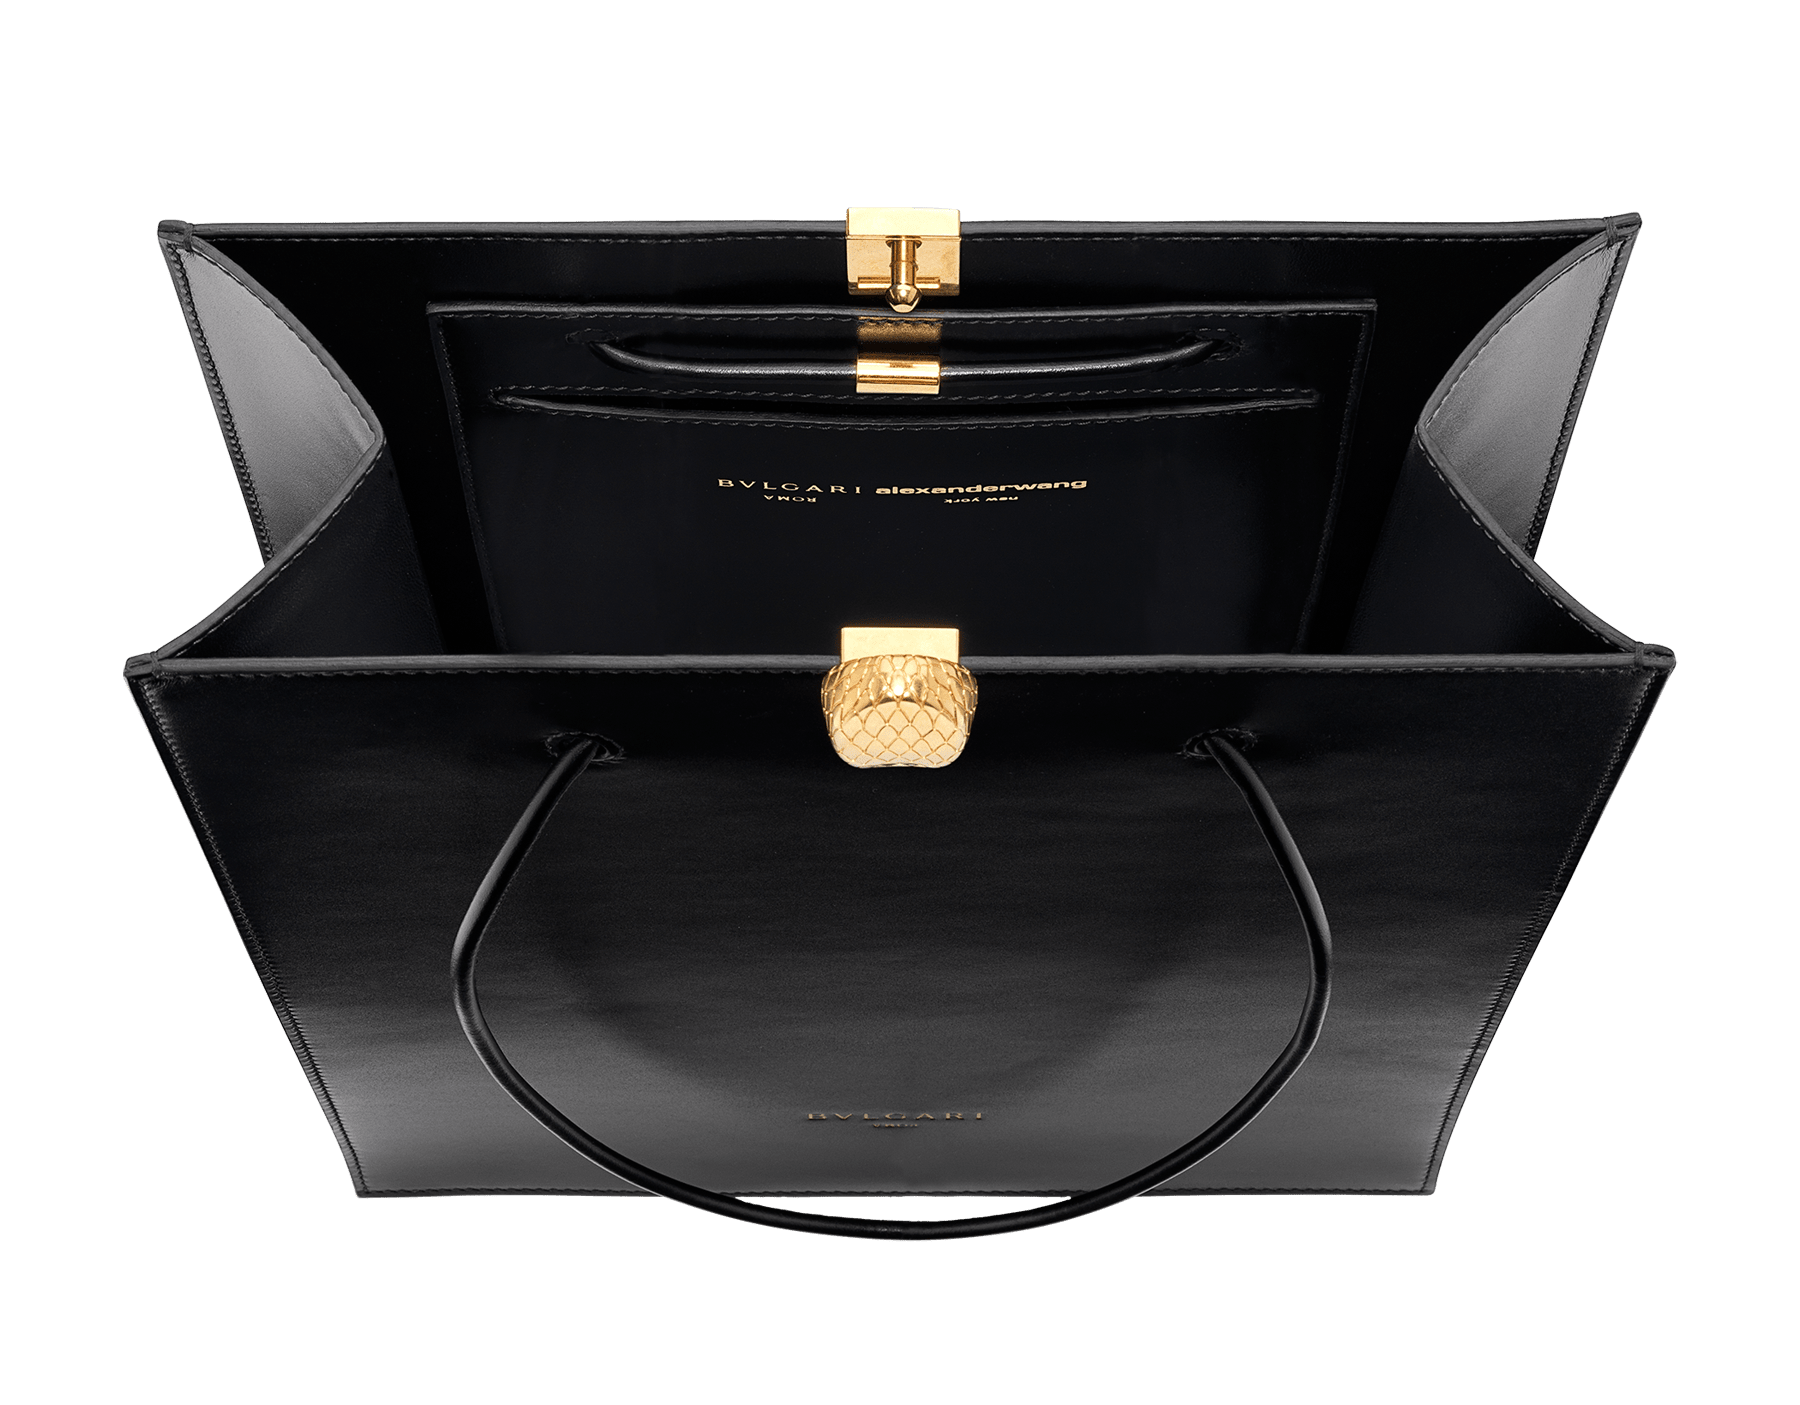 Alexander Wang x Bvlgari shopping tote bag in smooth black calf leather. New Serpenti head closure in antique gold plated brass with tempting red enamel eyes. Limited edition. 288733 image 4